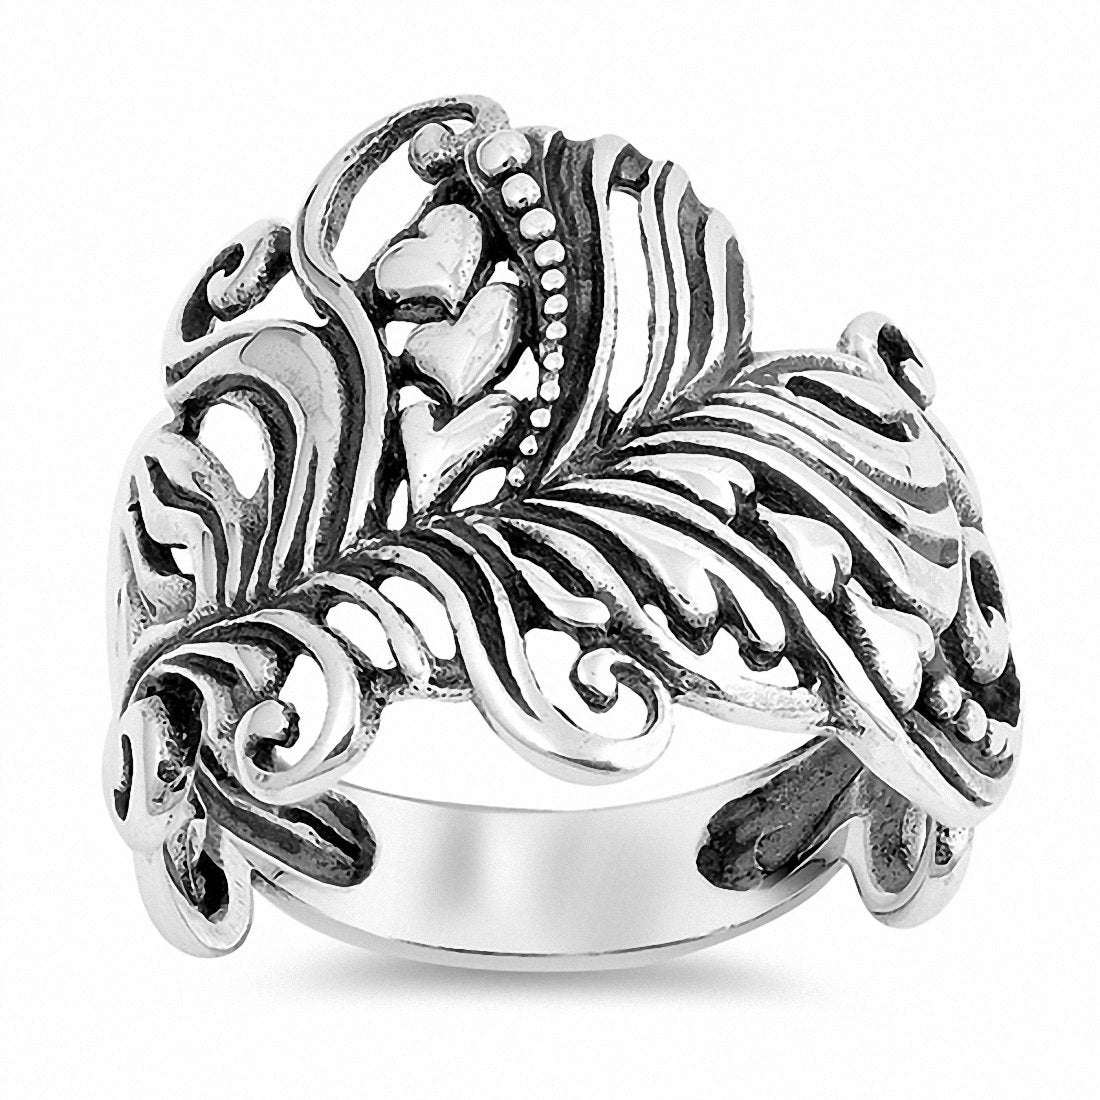 Heart Filigree Ring Band 925 Sterling Silver Choose Color